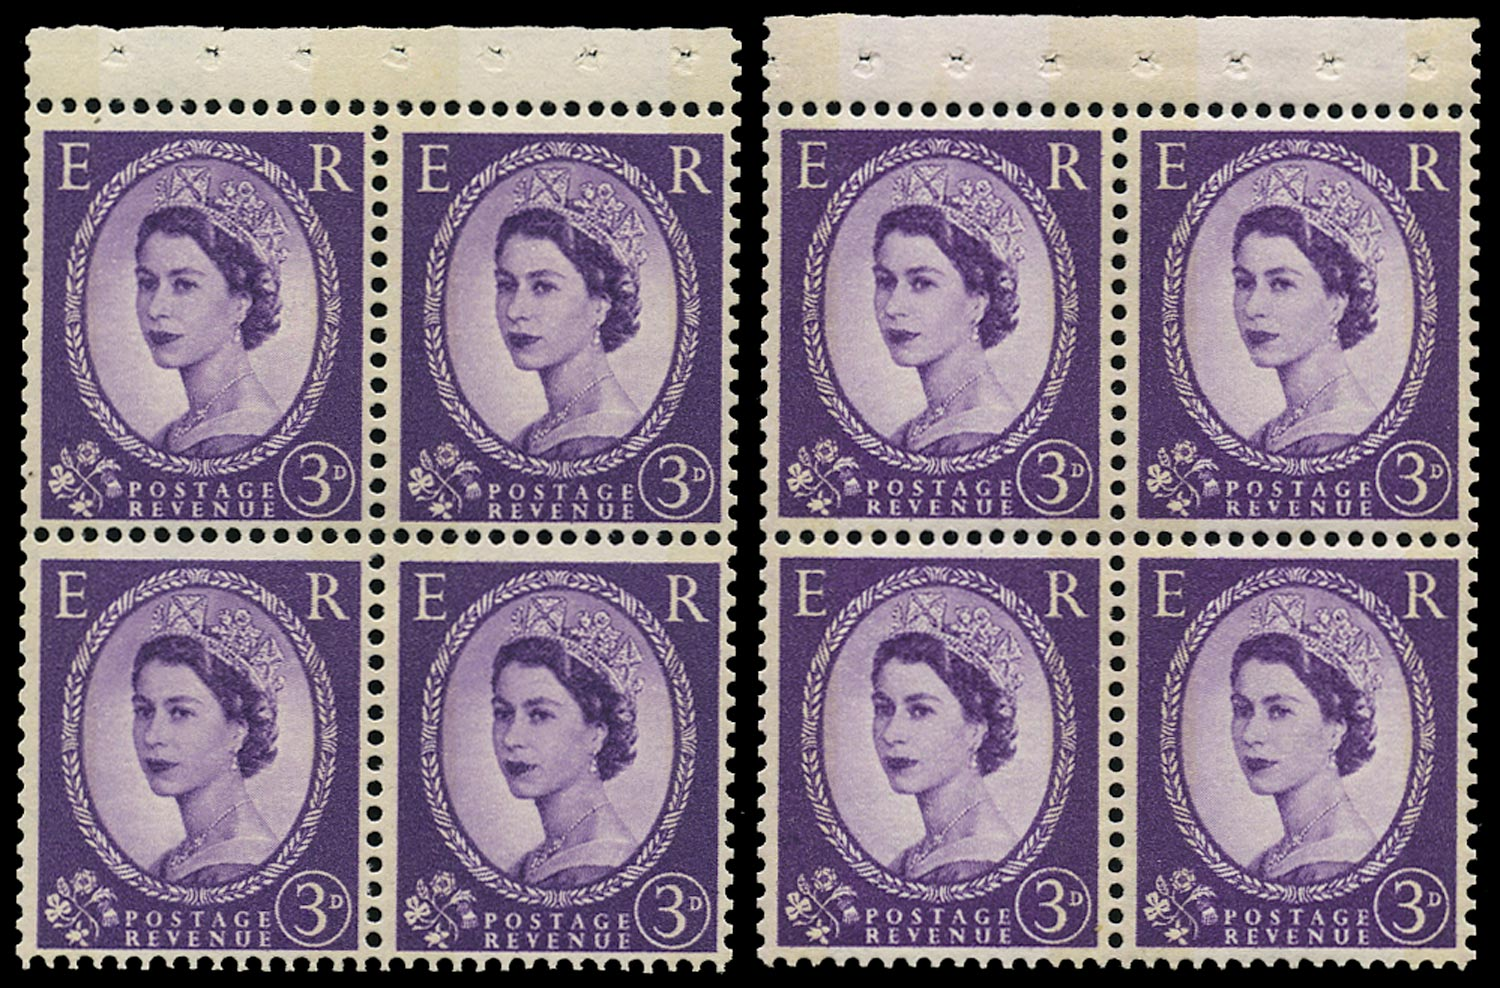 GB 1961  SG615m Booklet pane - Wmk. Sideways to left and right